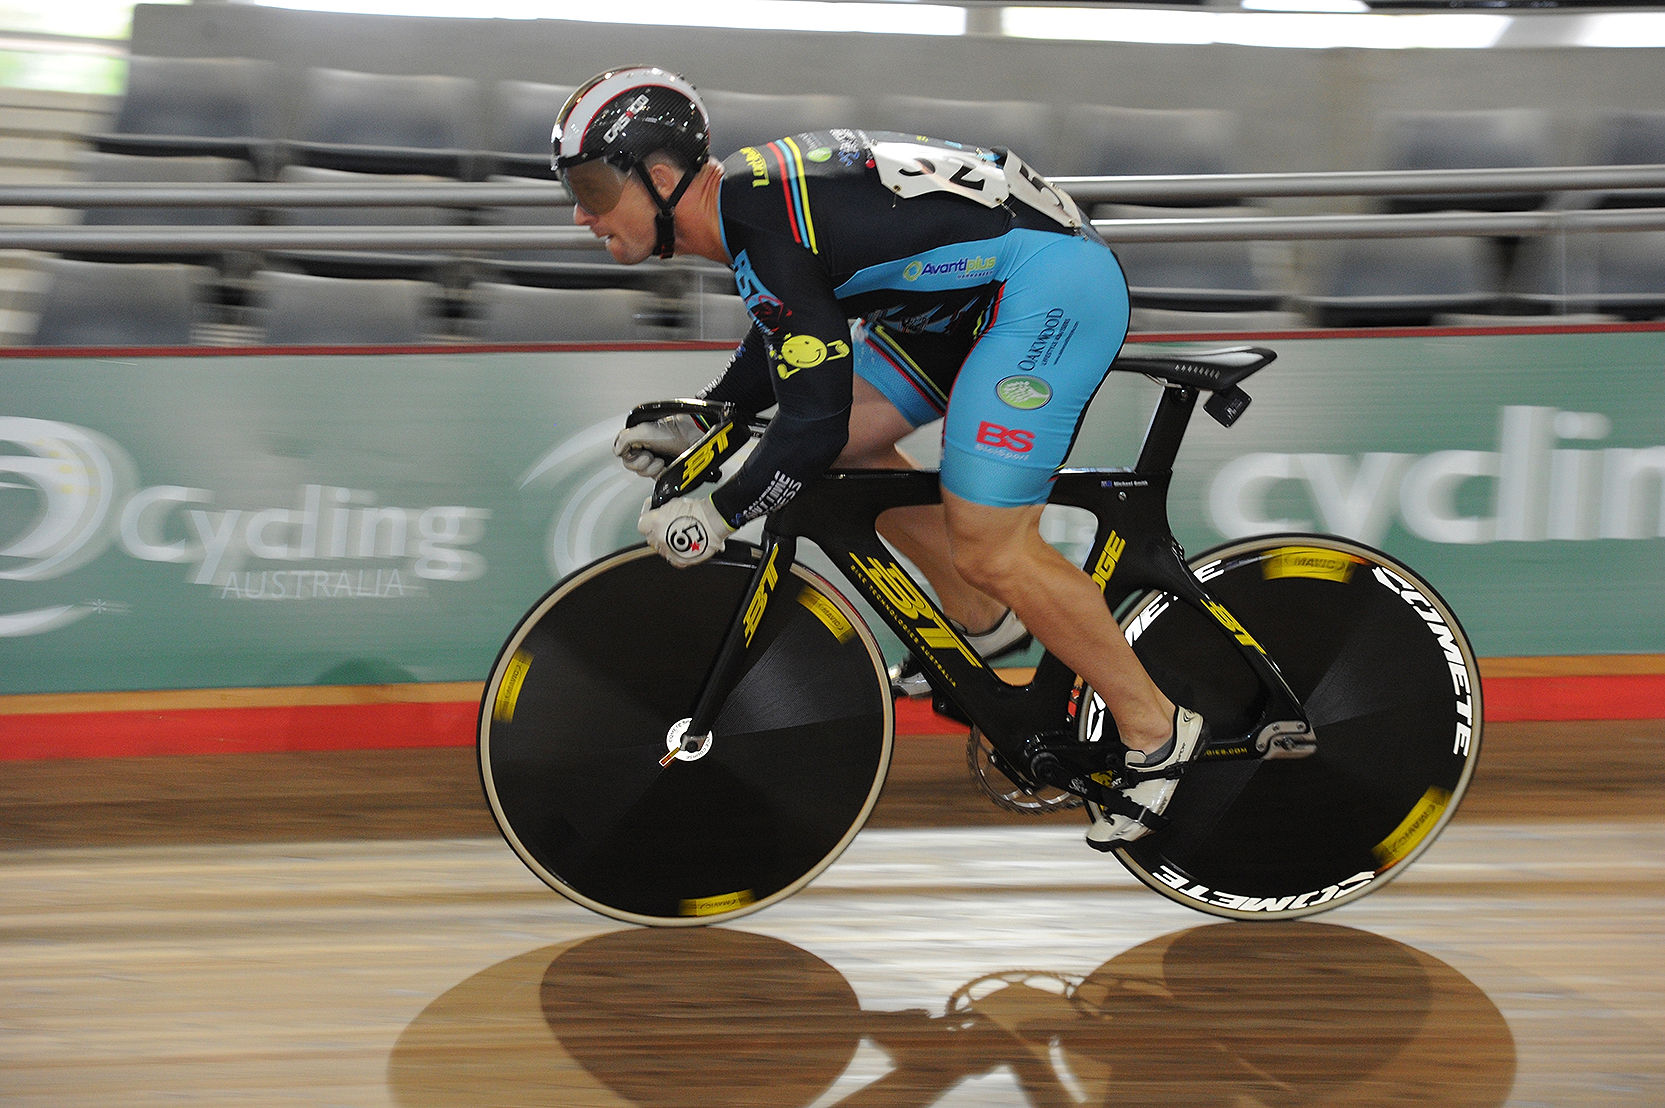 Mike Smith -World Masters Track Champion 2016 (Individual Sprint) & 2017 (Team Sprint)